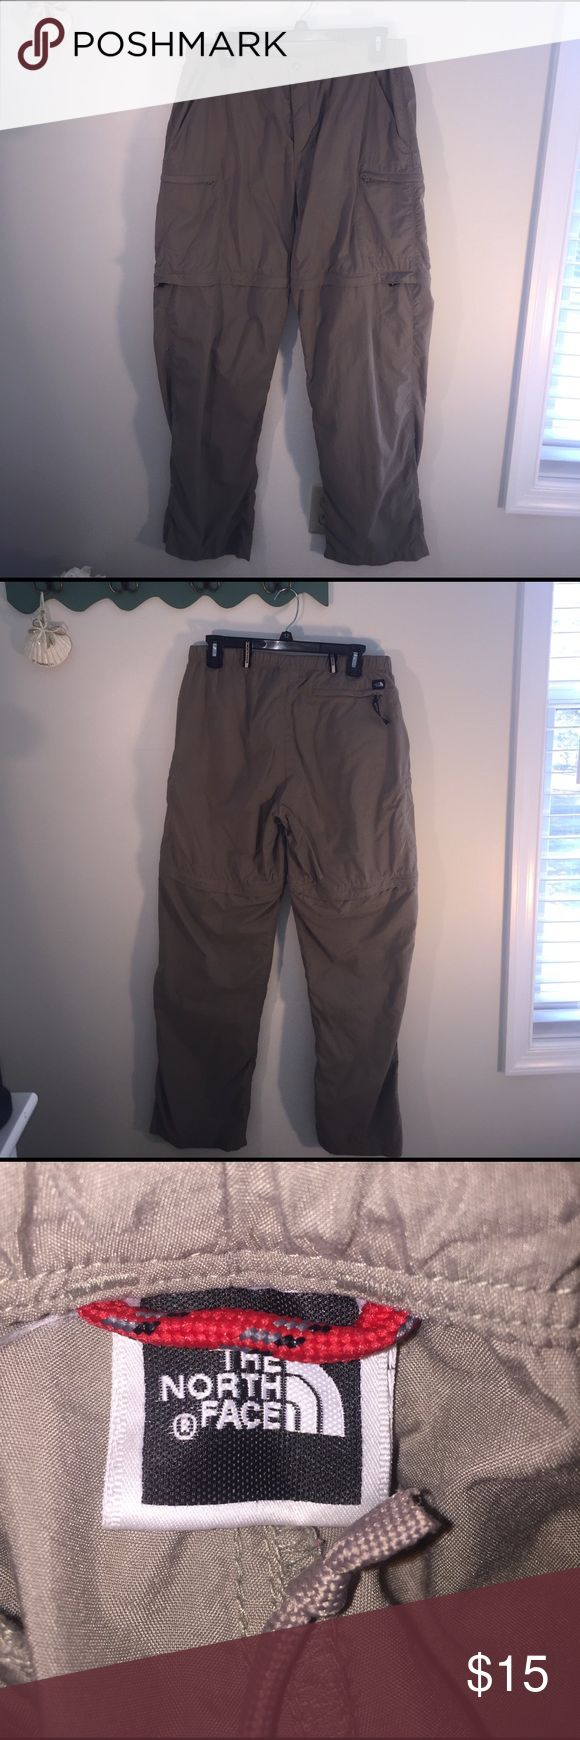 """The North Face Sz 8 Convertible Outdoor Pants EUC The North Face Sz 8 Convertible Outdoor Pants Size Tag Has Been Removed But Brand Tag Still in Tact see photo. Great Outdoor Trail Hiking Pants with zippers to convert into Shorts 30"""" Inseam Excellent Condition The North Face Pants"""